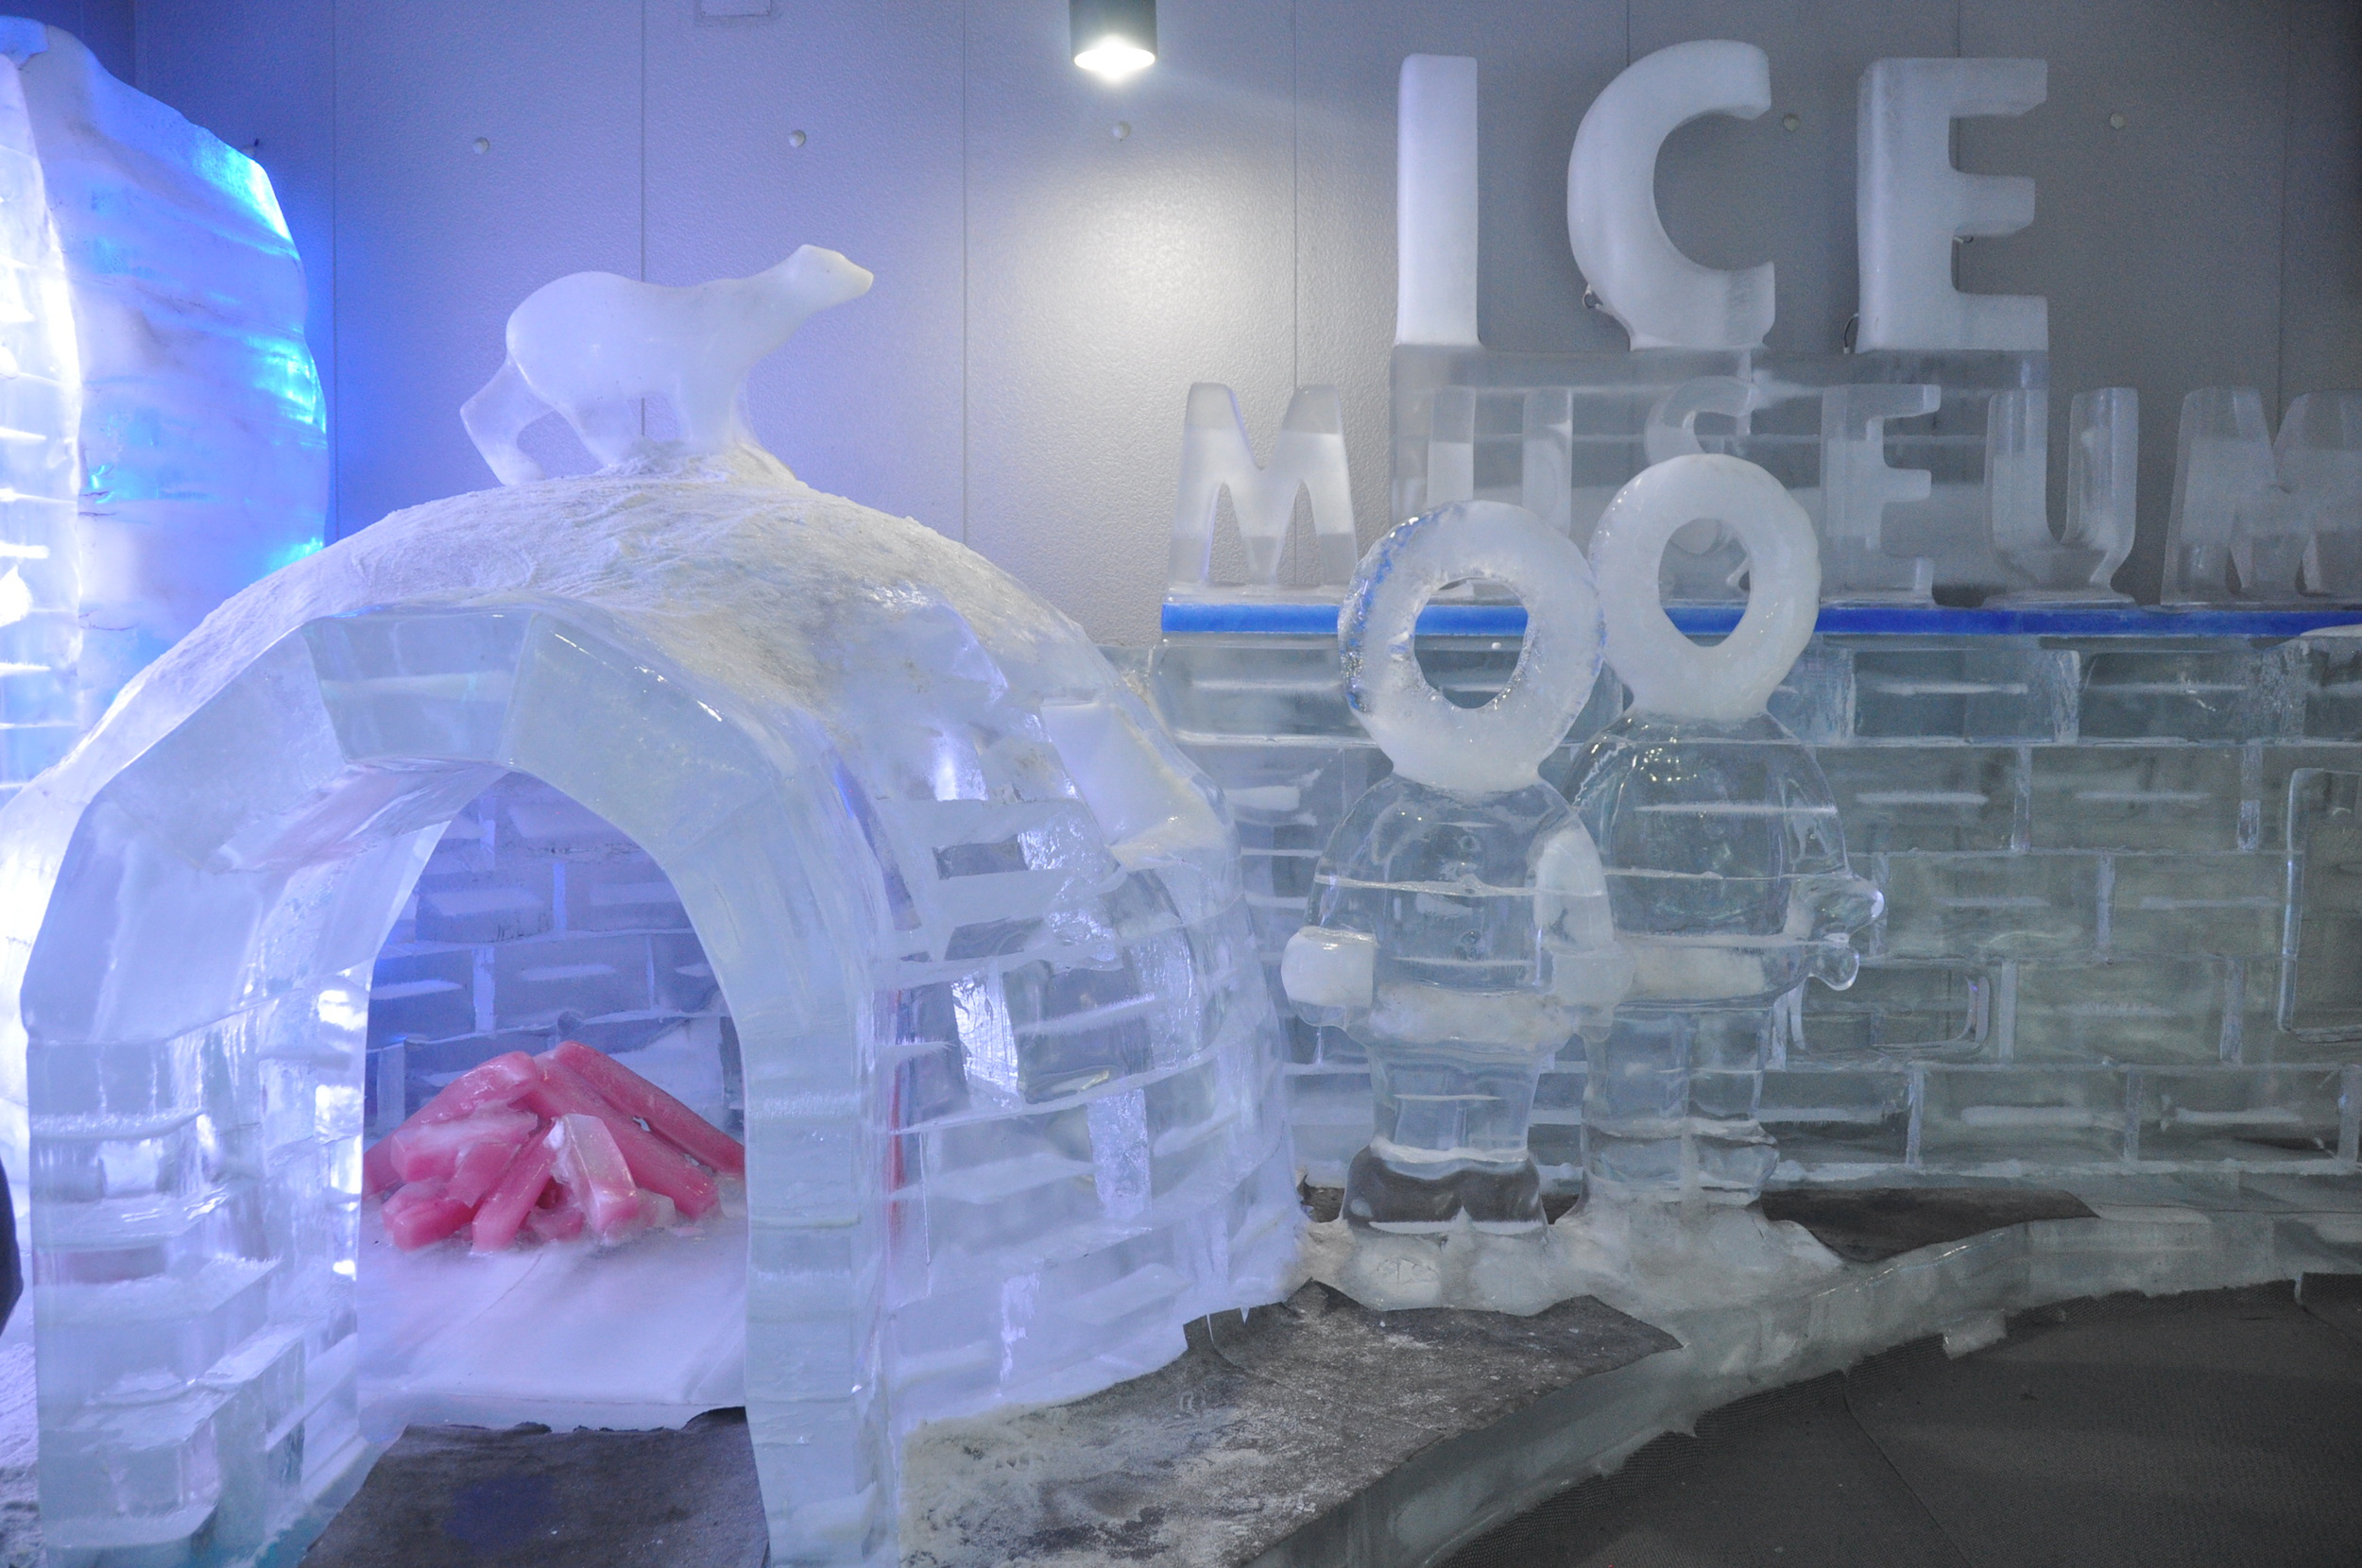 Seoul Trick Eye Museum Korea Ice